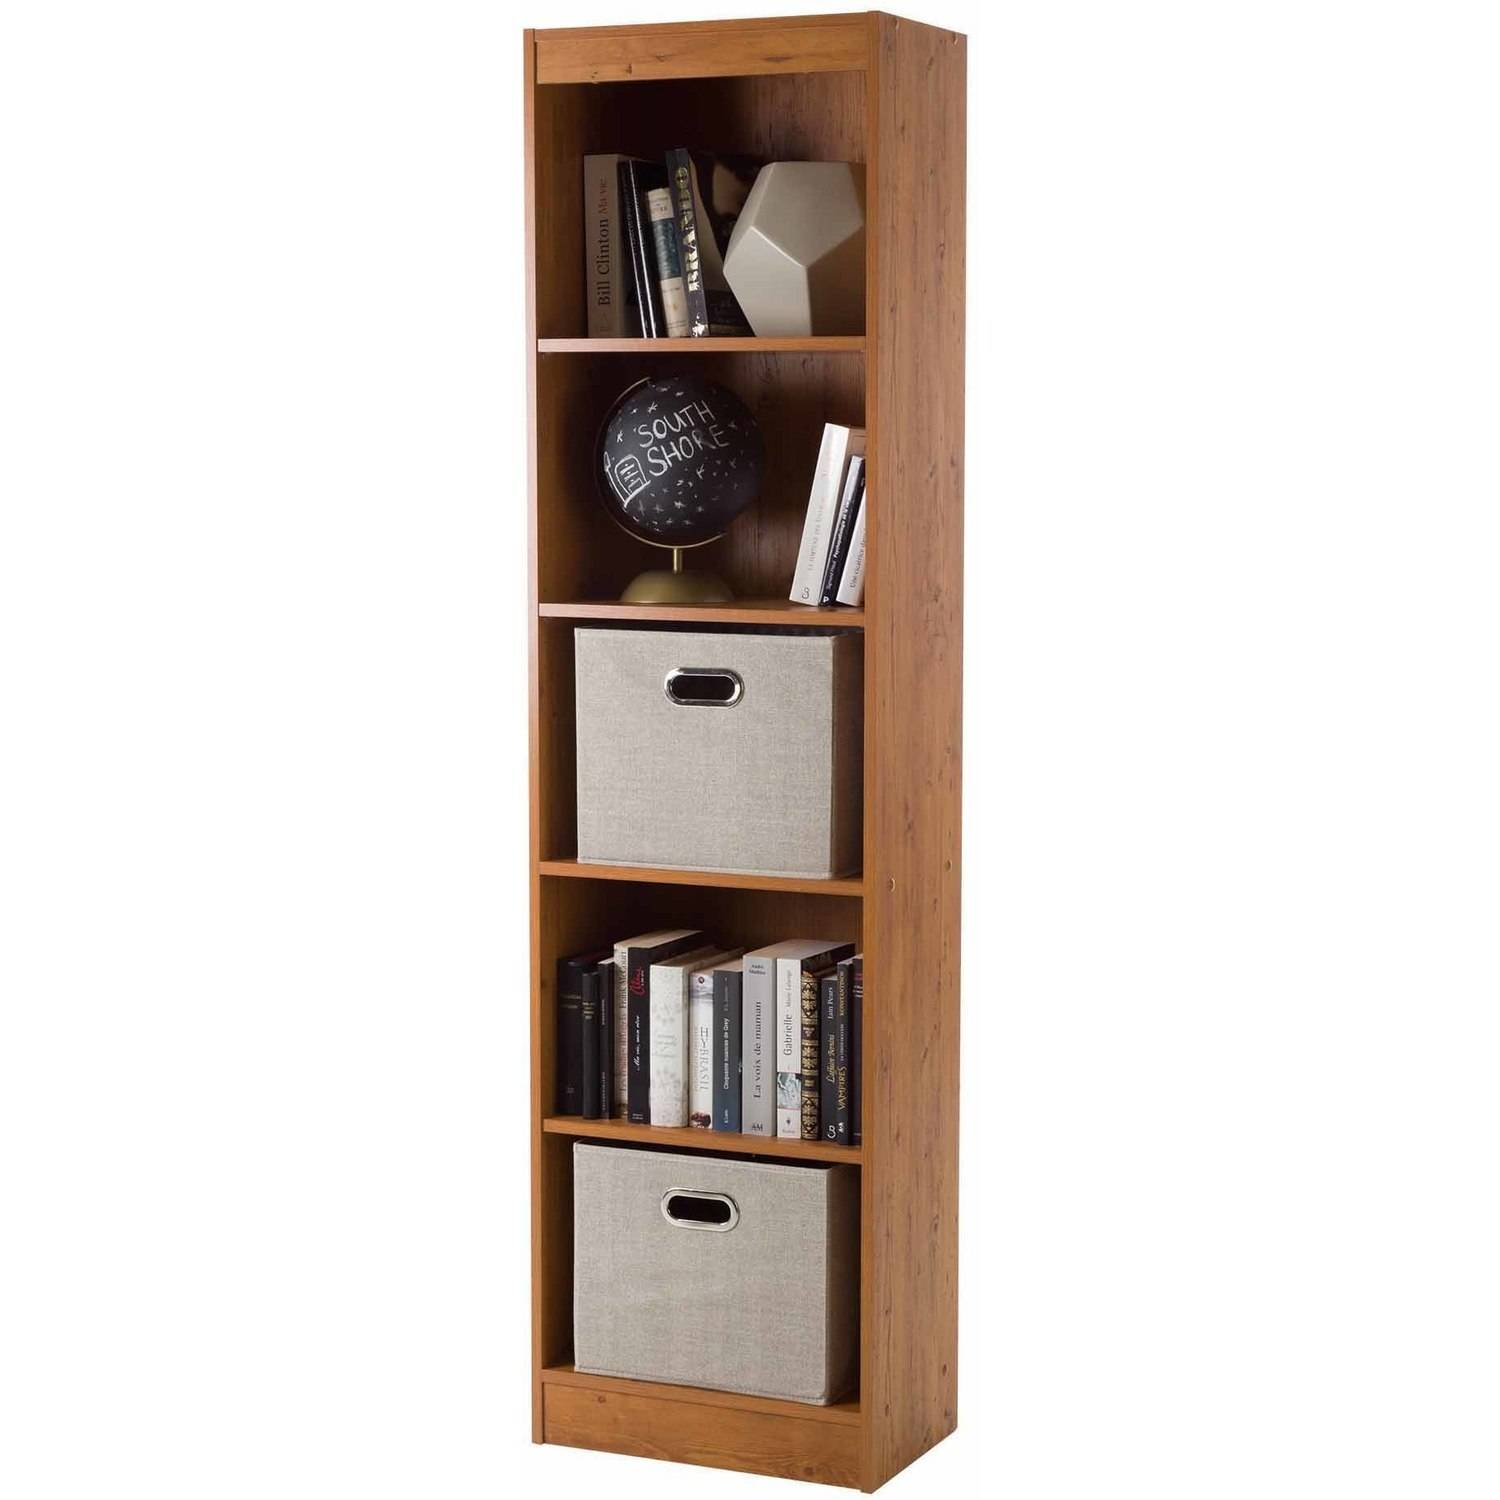 South Shore Smart Basics 5 Shelf 68 3/4